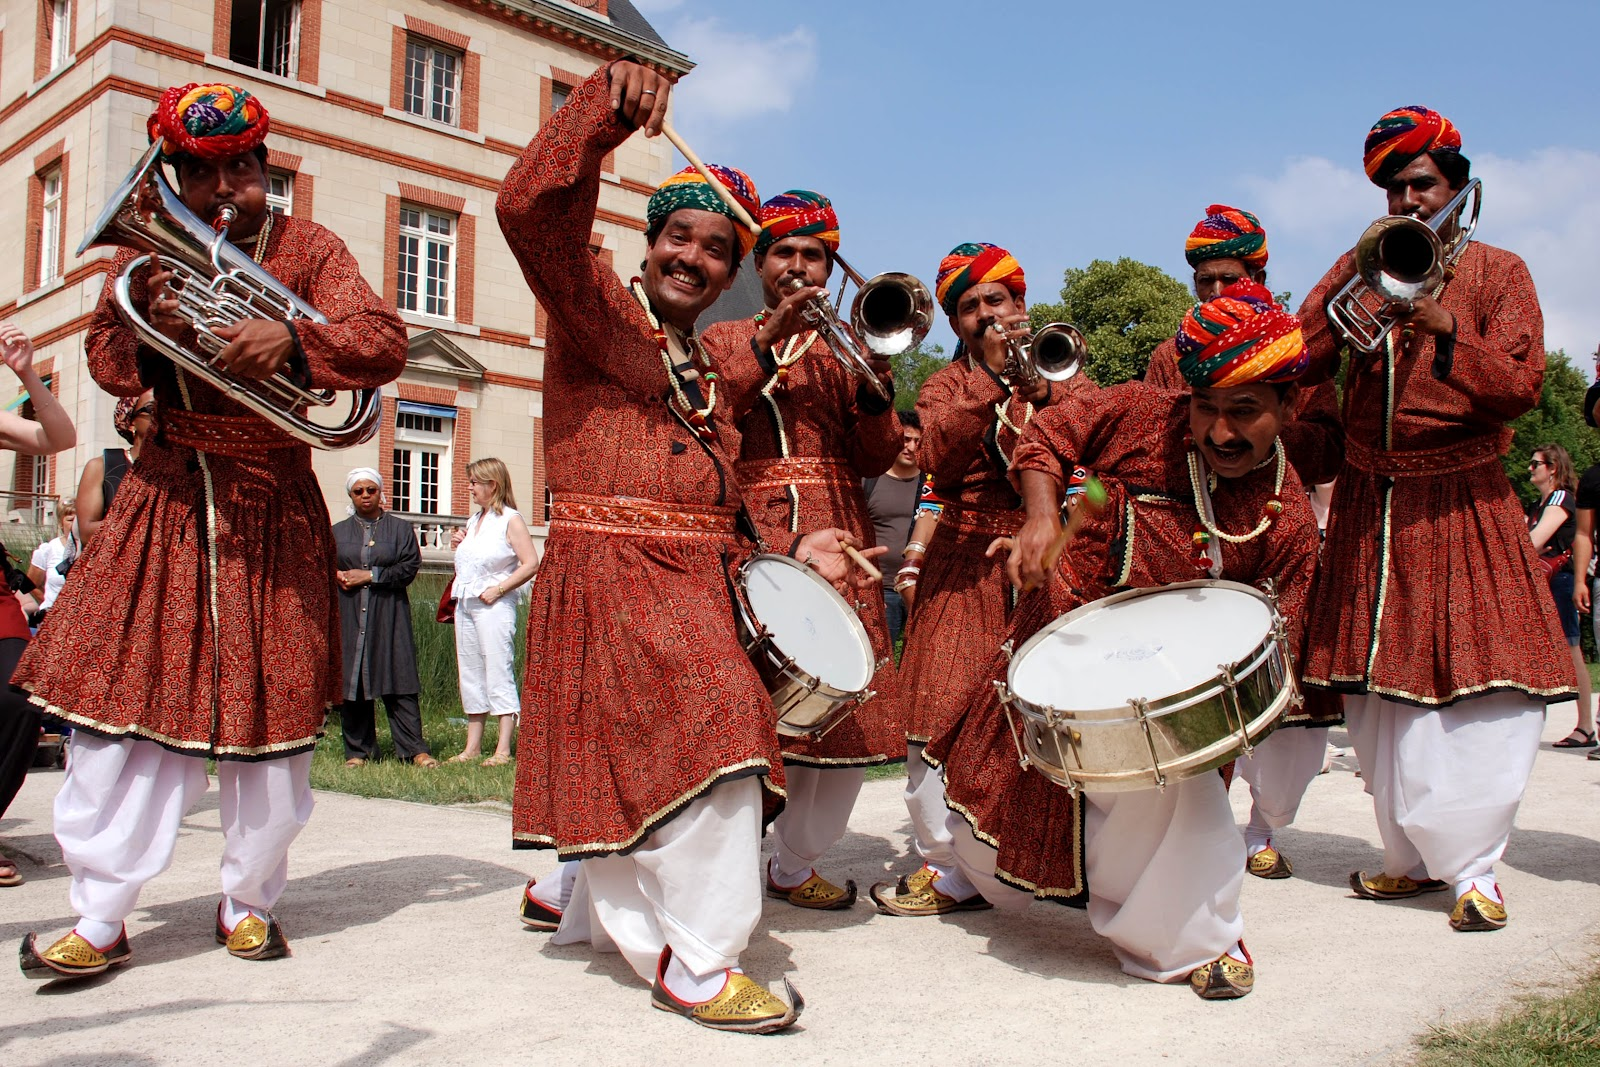 Baraat Consists Of A Group 12 Or More Musicians Called The Br Band Who Play Number Instruments And Provide Typical Music